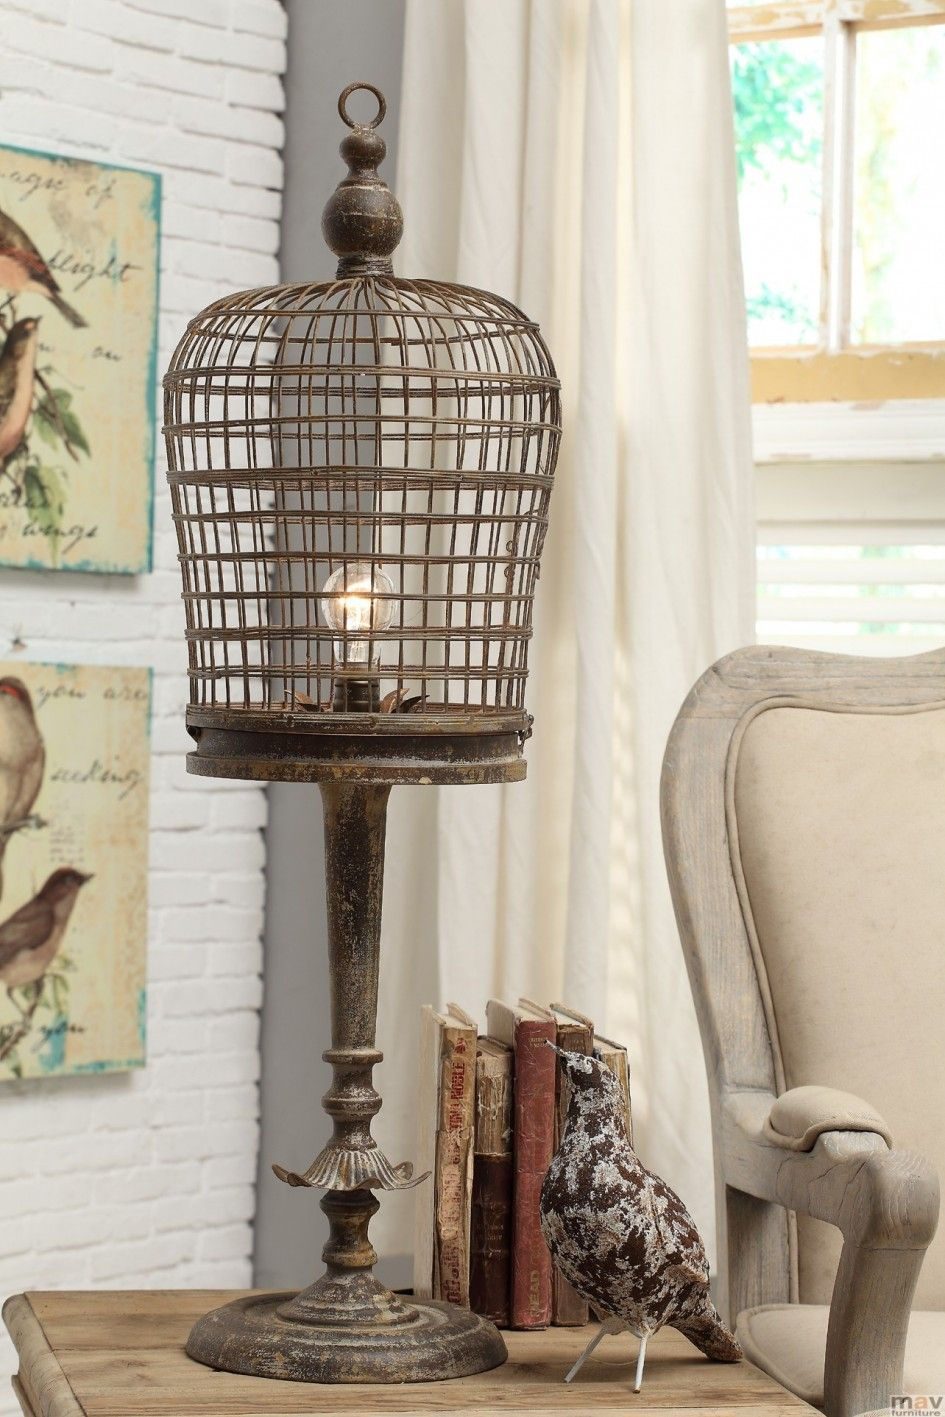 Decoration vintage birdcage table lamp iron material bark brown decoration vintage birdcage table lamp iron material bark brown finish bulb light decorative accent modern home geotapseo Image collections